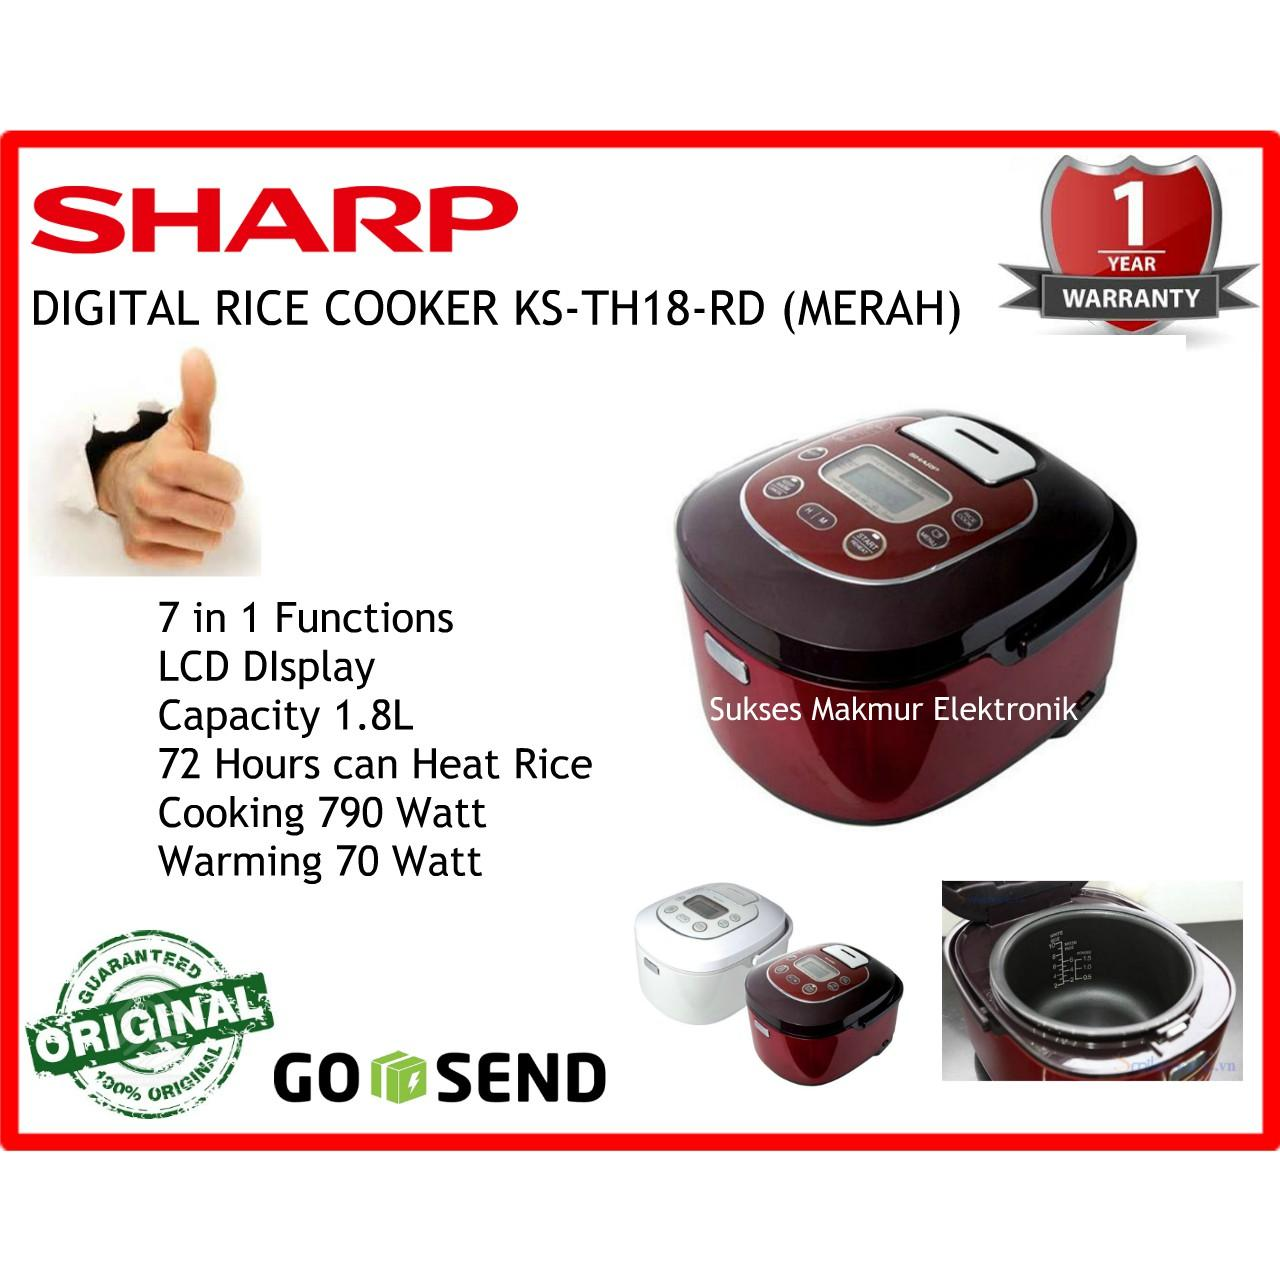 Sharp Rice Cooker 1 8lt Ks Th18 Wh Putih Daftar Harga Terlengkap R18ms Br Pp Gy Pk Rd Merah 18 Lt 790 Watt